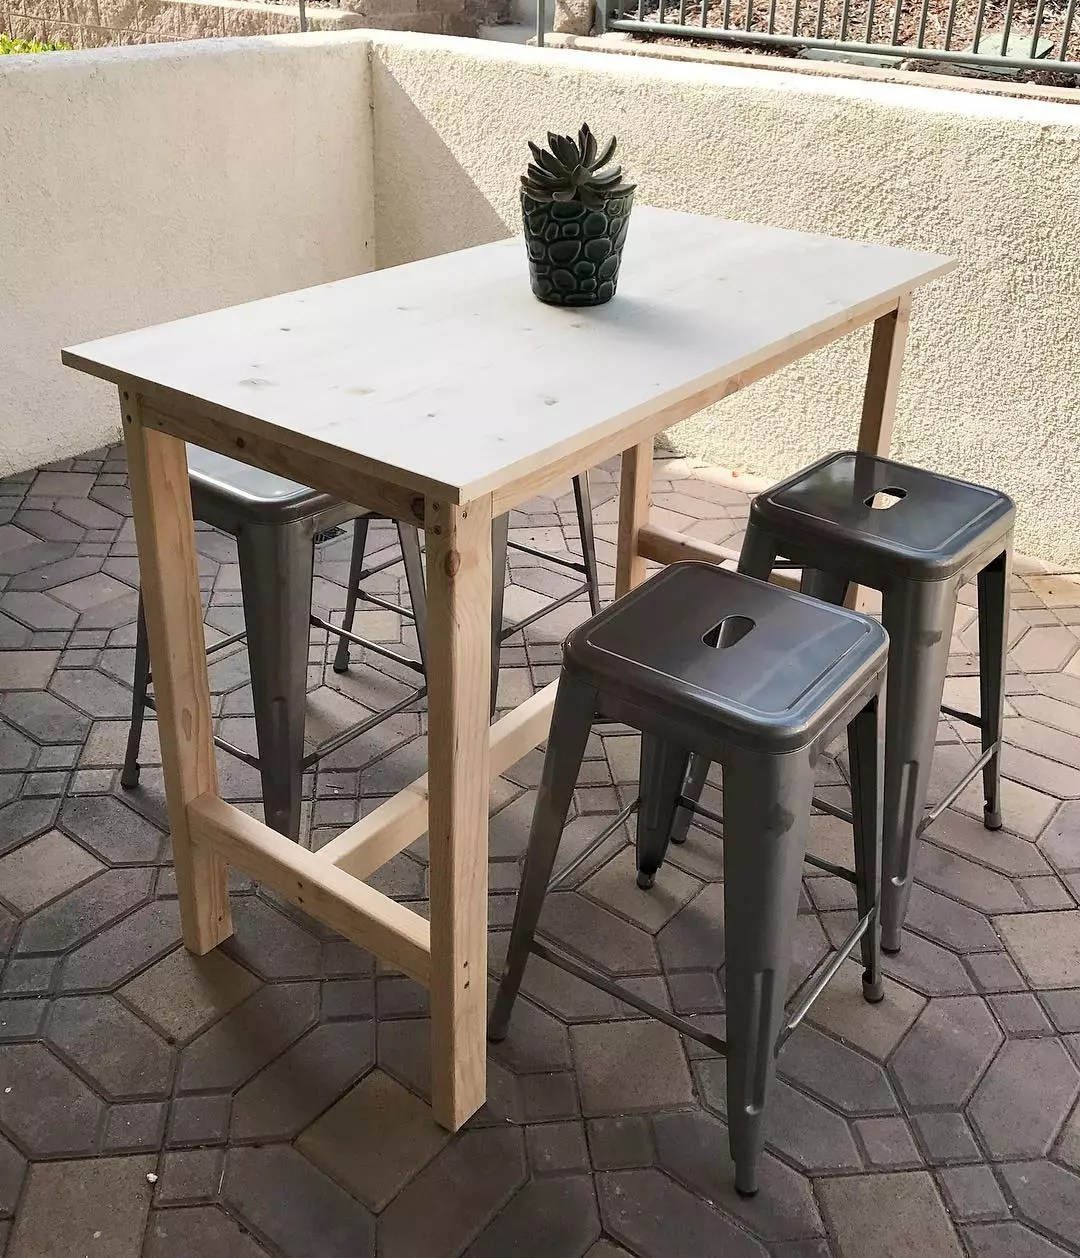 tall bar table with bar height stools for the patio photo by Instagram user @siandsi_woodshop